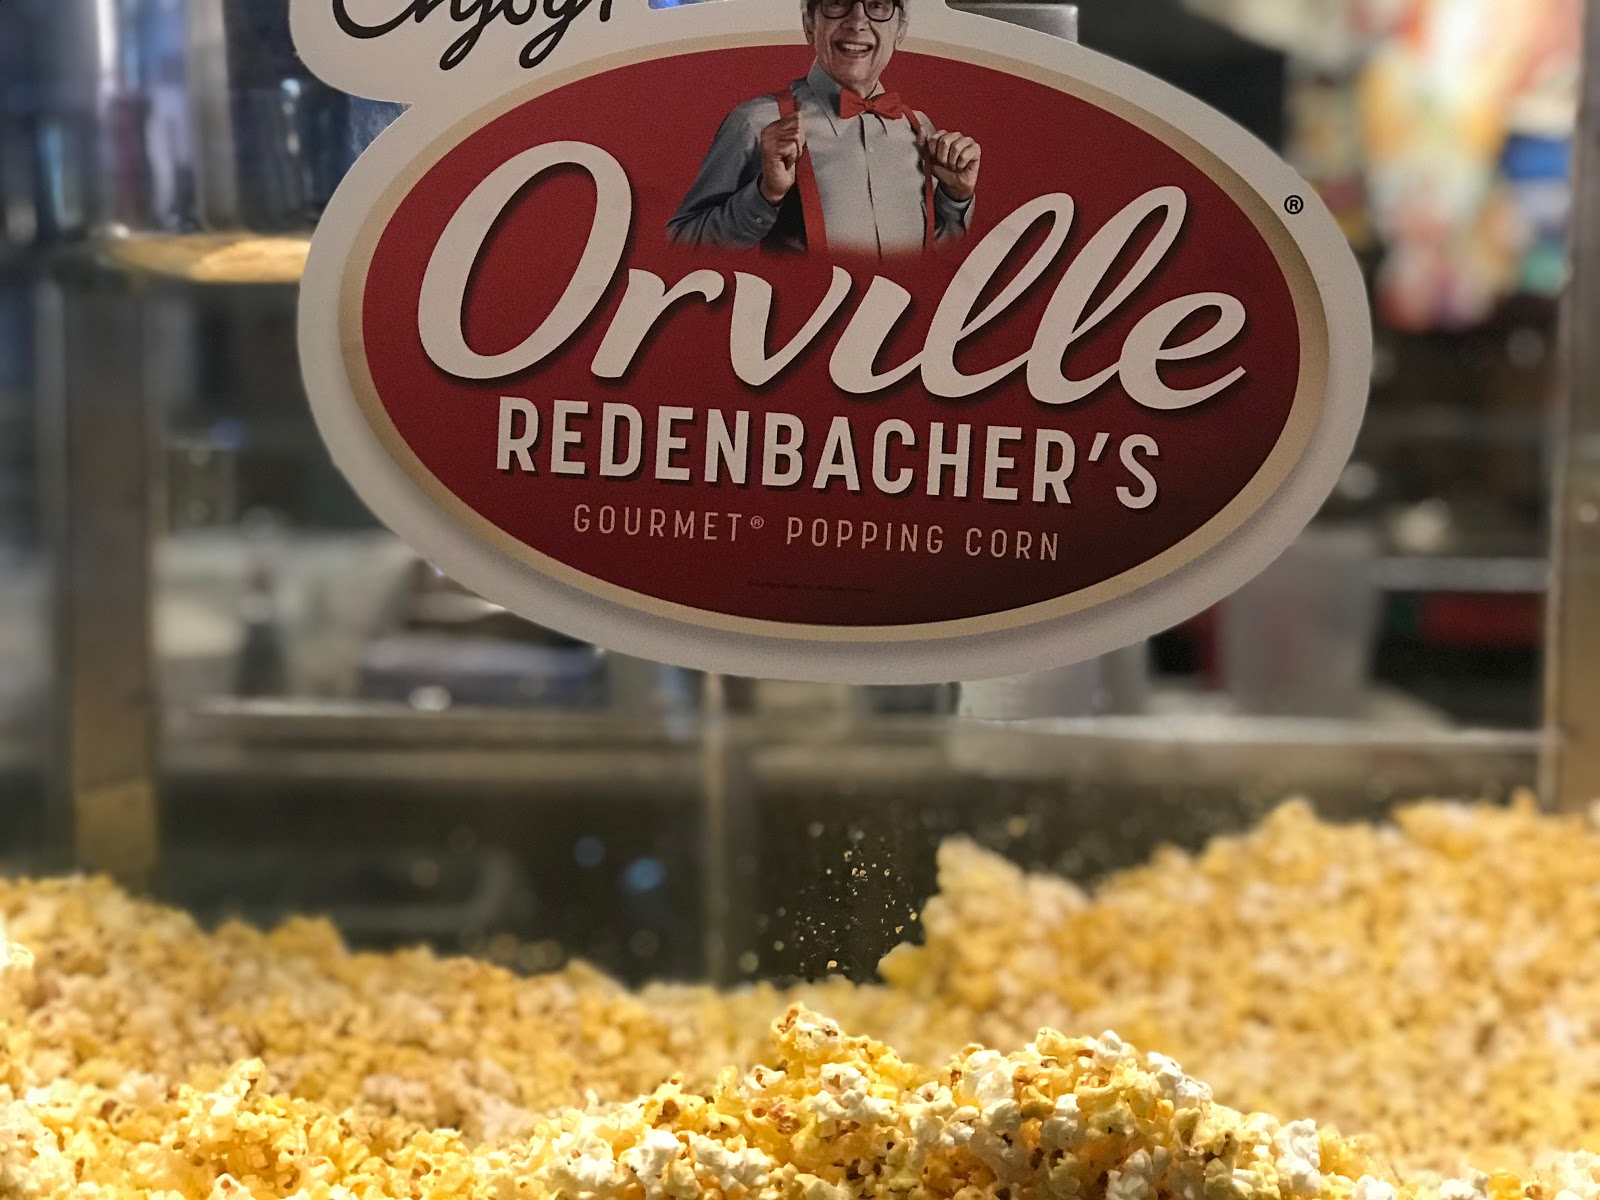 Image: Popcorn at the movies picture taken by Tangie Bell for blogpost on Bits and Babbles. Popcorn was Orvile Redenbacher